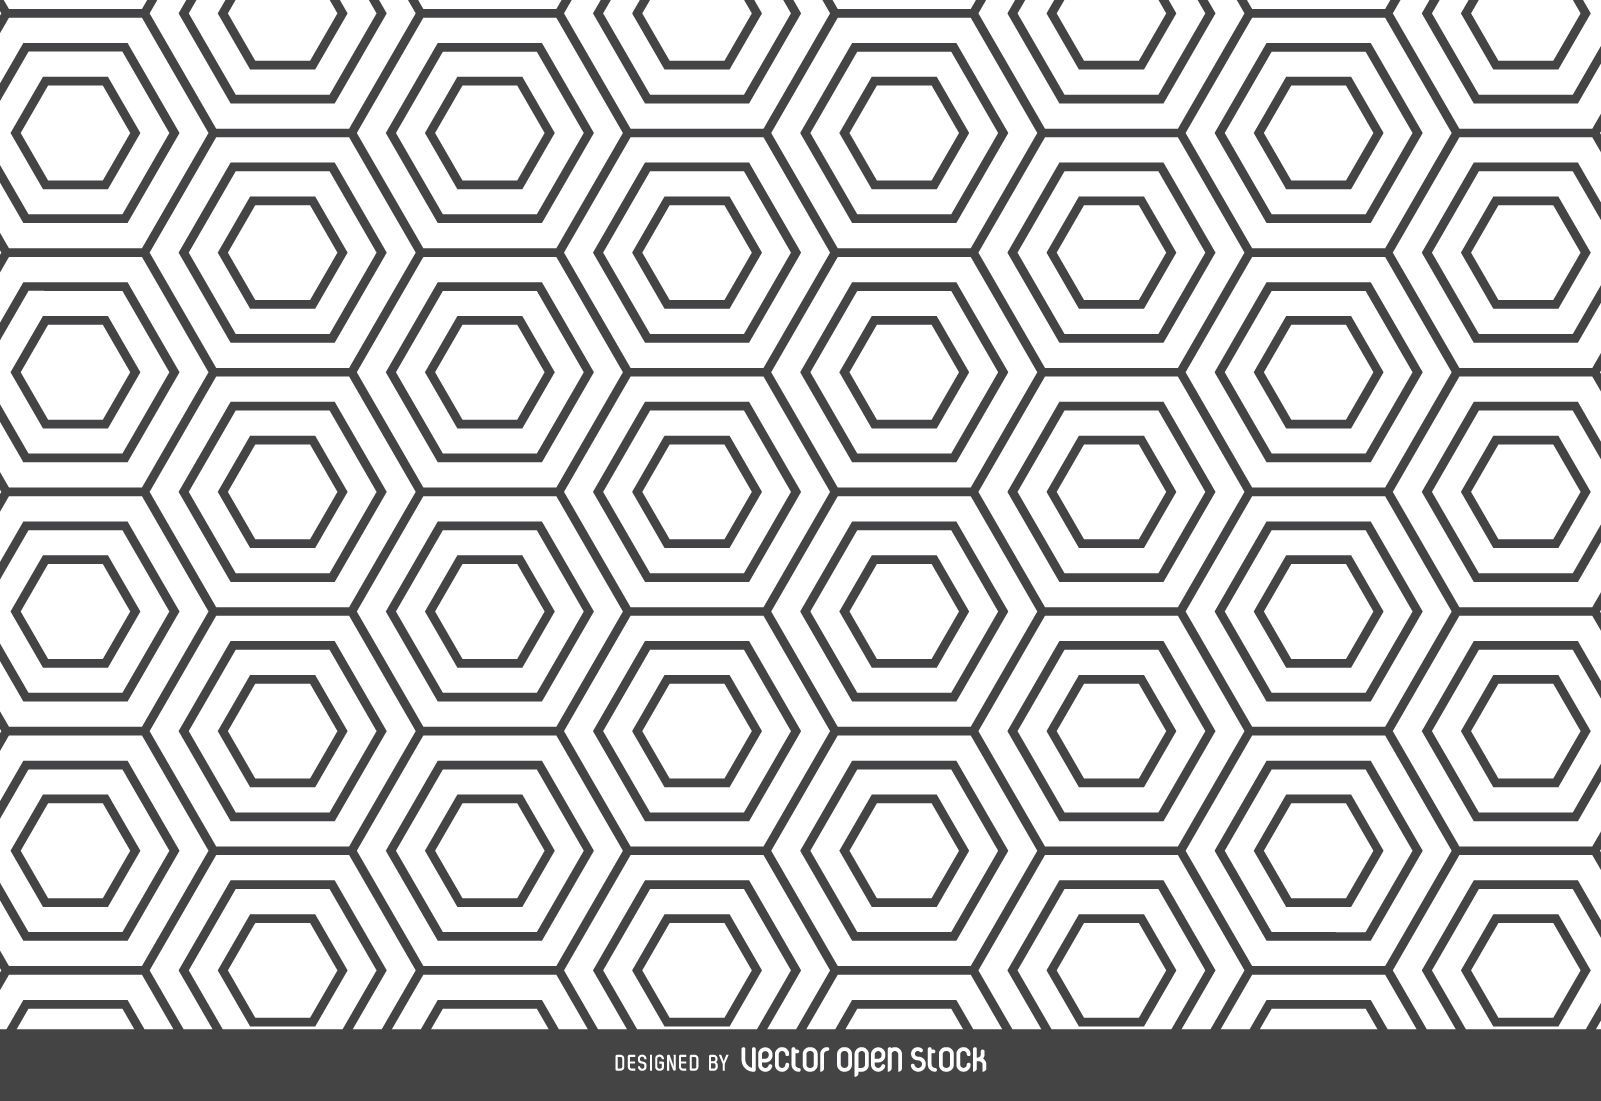 Hexagon linear pattern backdrop - Vector download